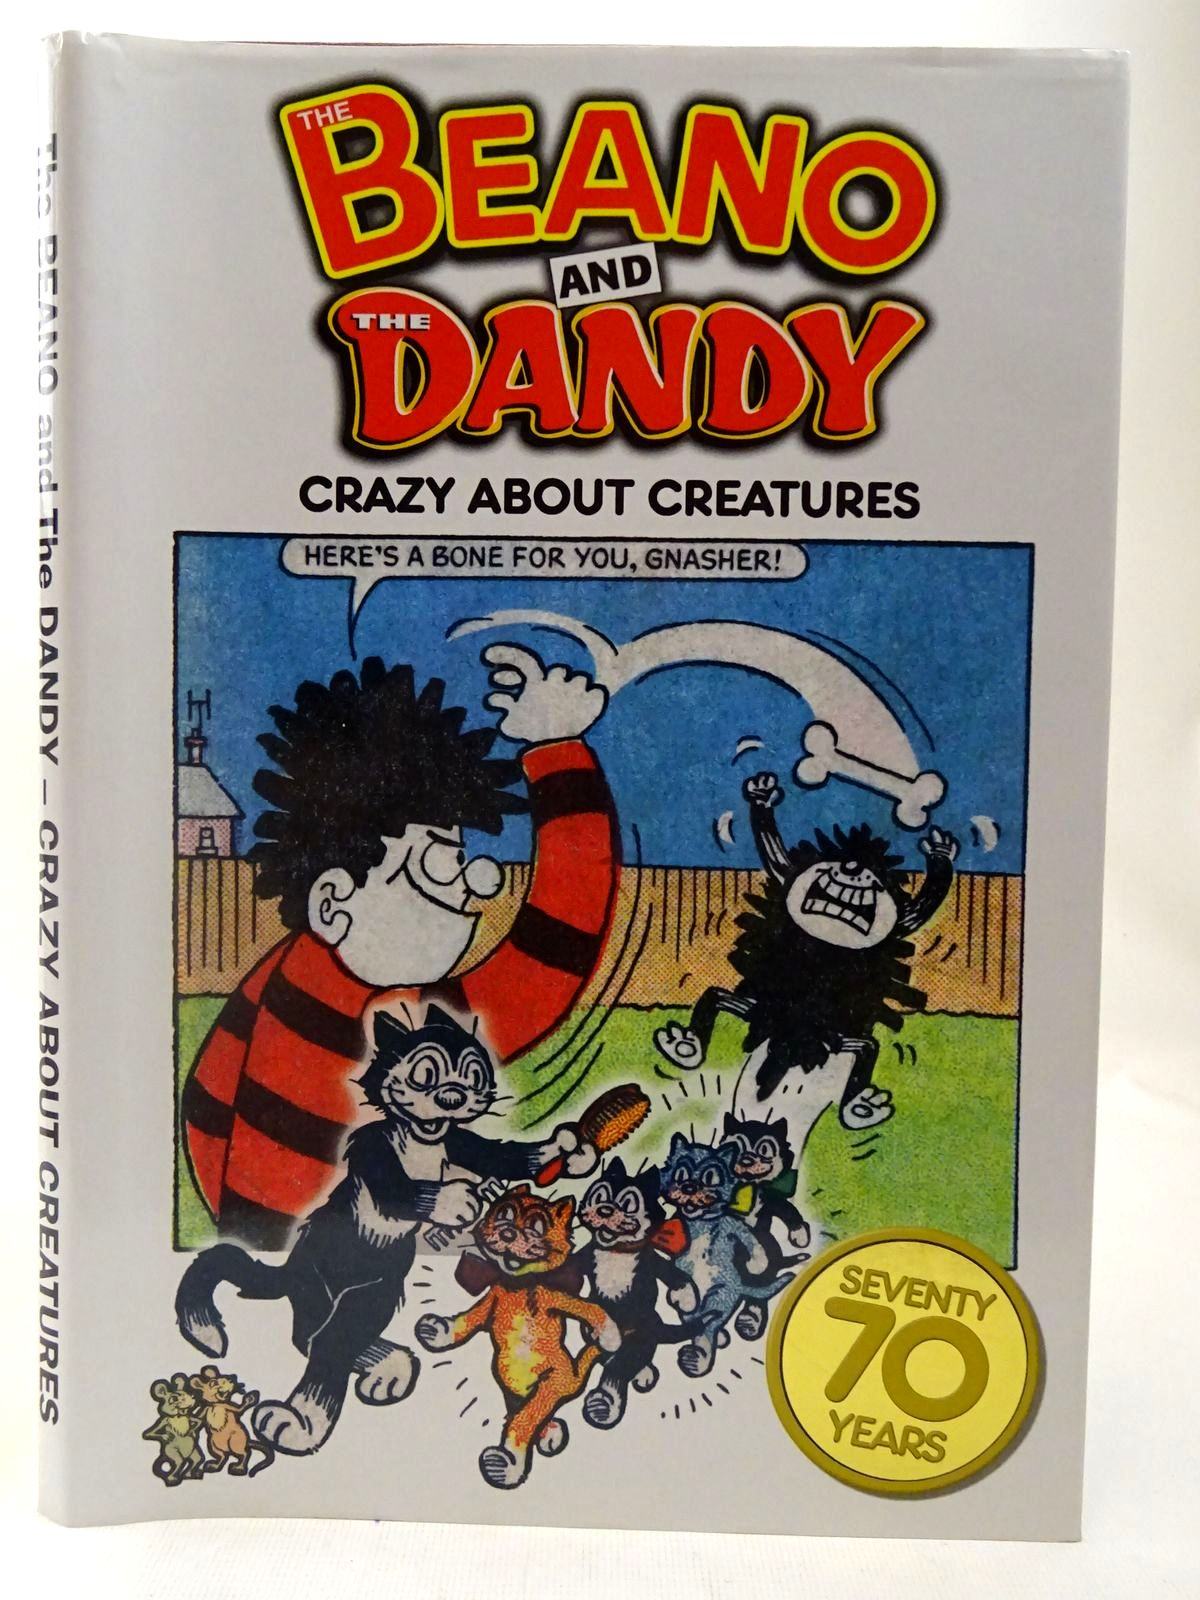 Photo of THE BEANO AND THE DANDY - CRAZY ABOUT CREATURES published by D.C. Thomson & Co Ltd. (STOCK CODE: 2127373)  for sale by Stella & Rose's Books